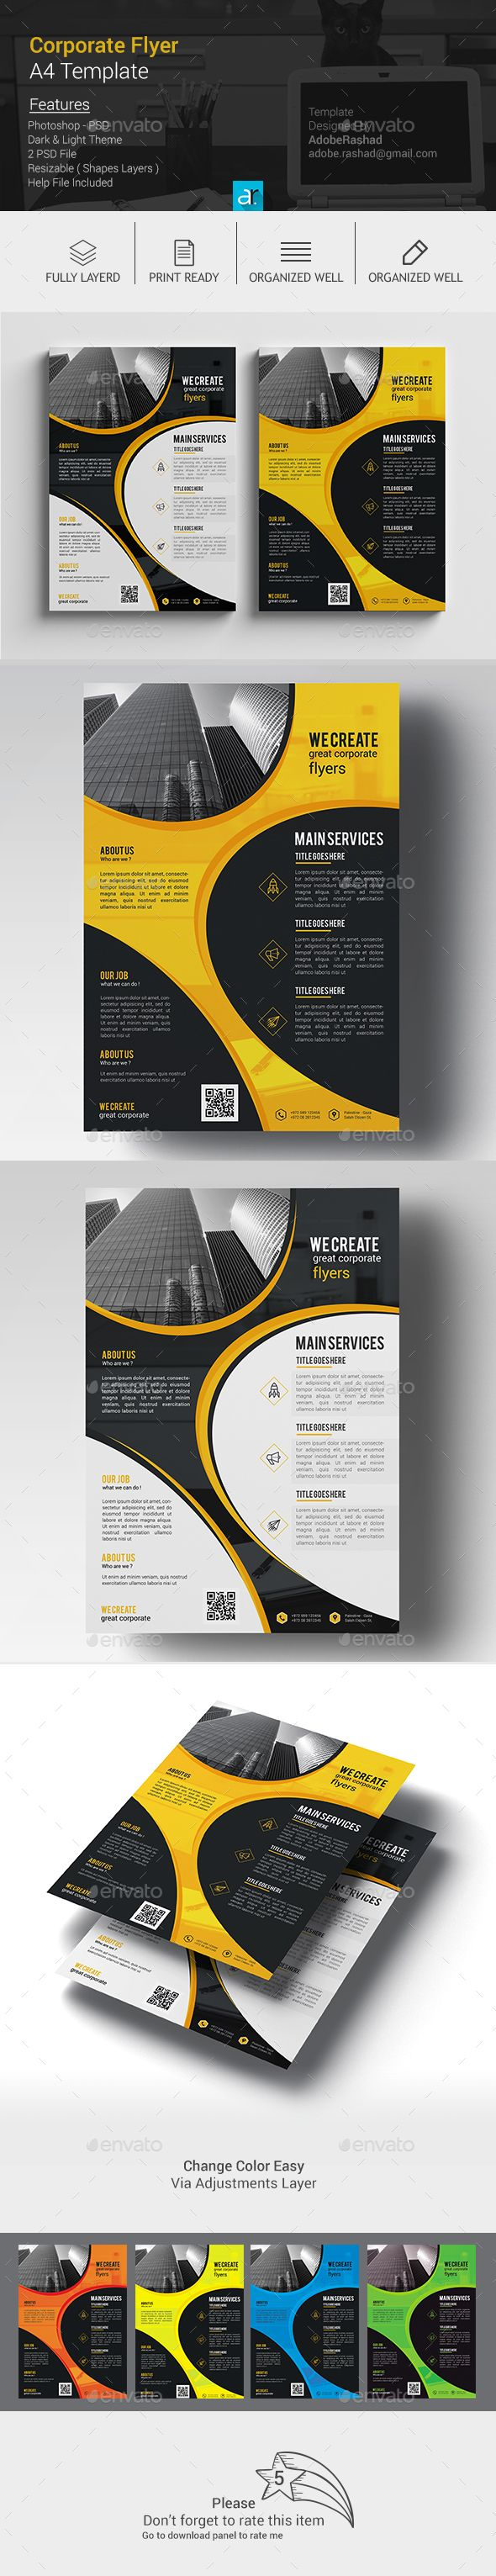 A4 Corporate Flyer Template PSD #design Download: http://graphicriver.net/item/a4-corporate-flyer-03/14026718?ref=ksioks